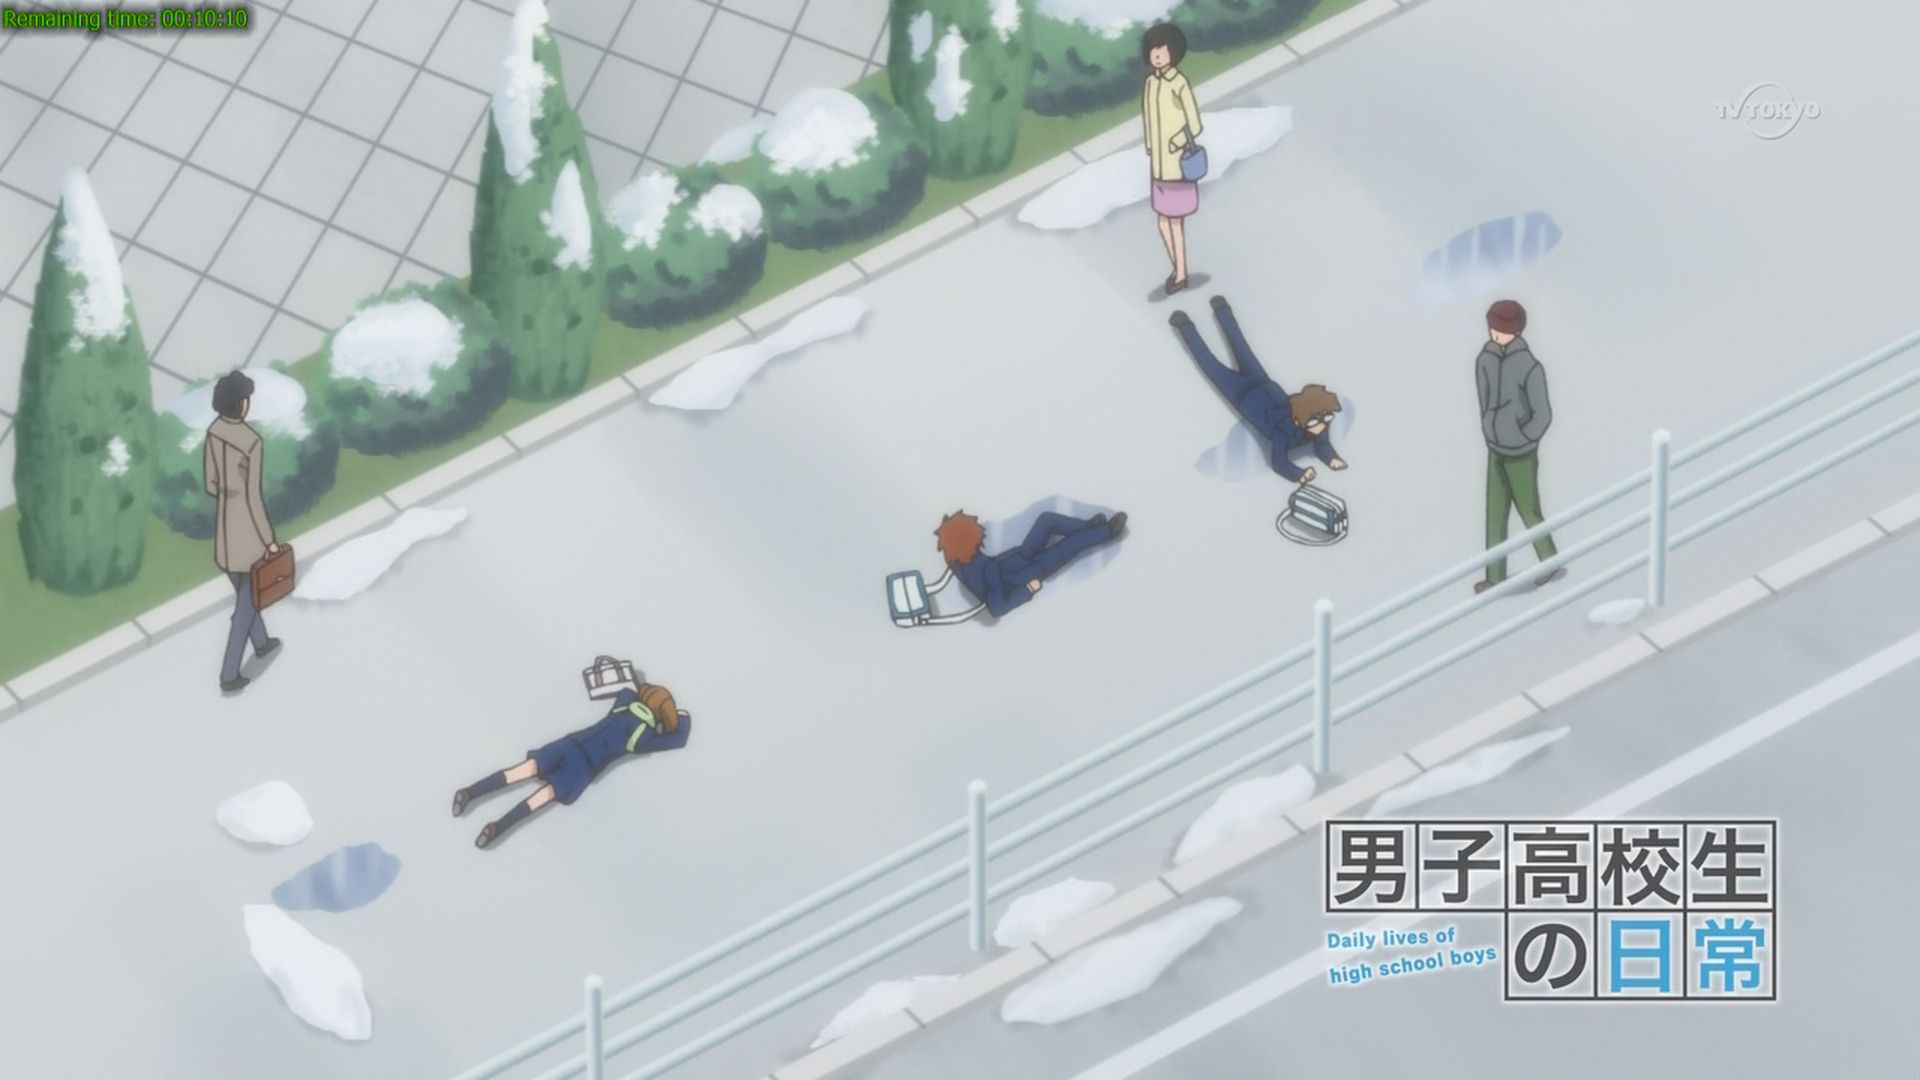 Want to know how those three characters ends up on the ground? Watch this seriesd then!